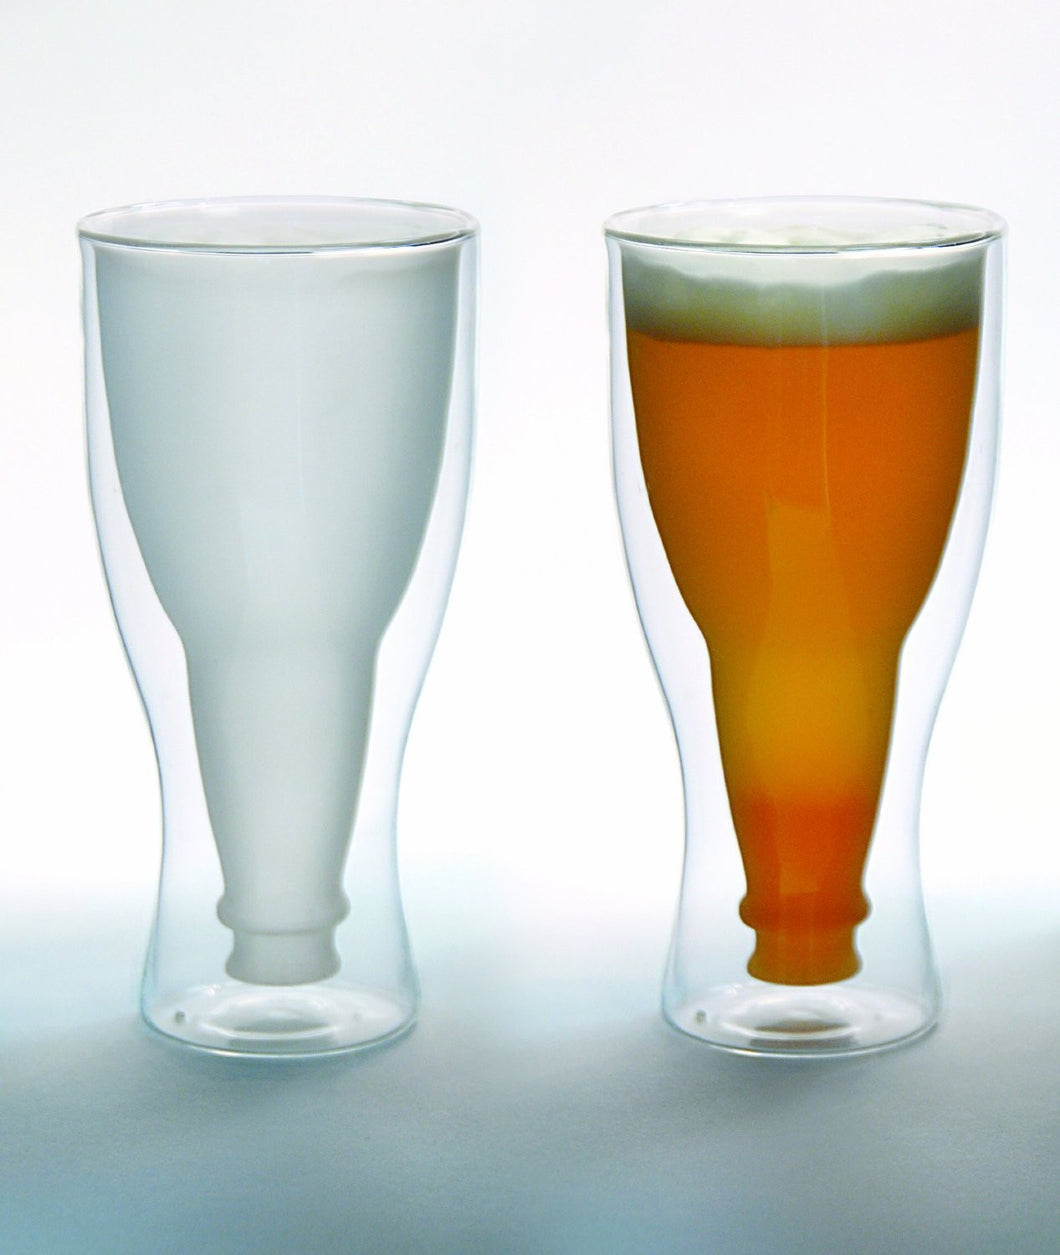 Hopside Down Beer Glass, Double Wall Beer Glass - FROSTED